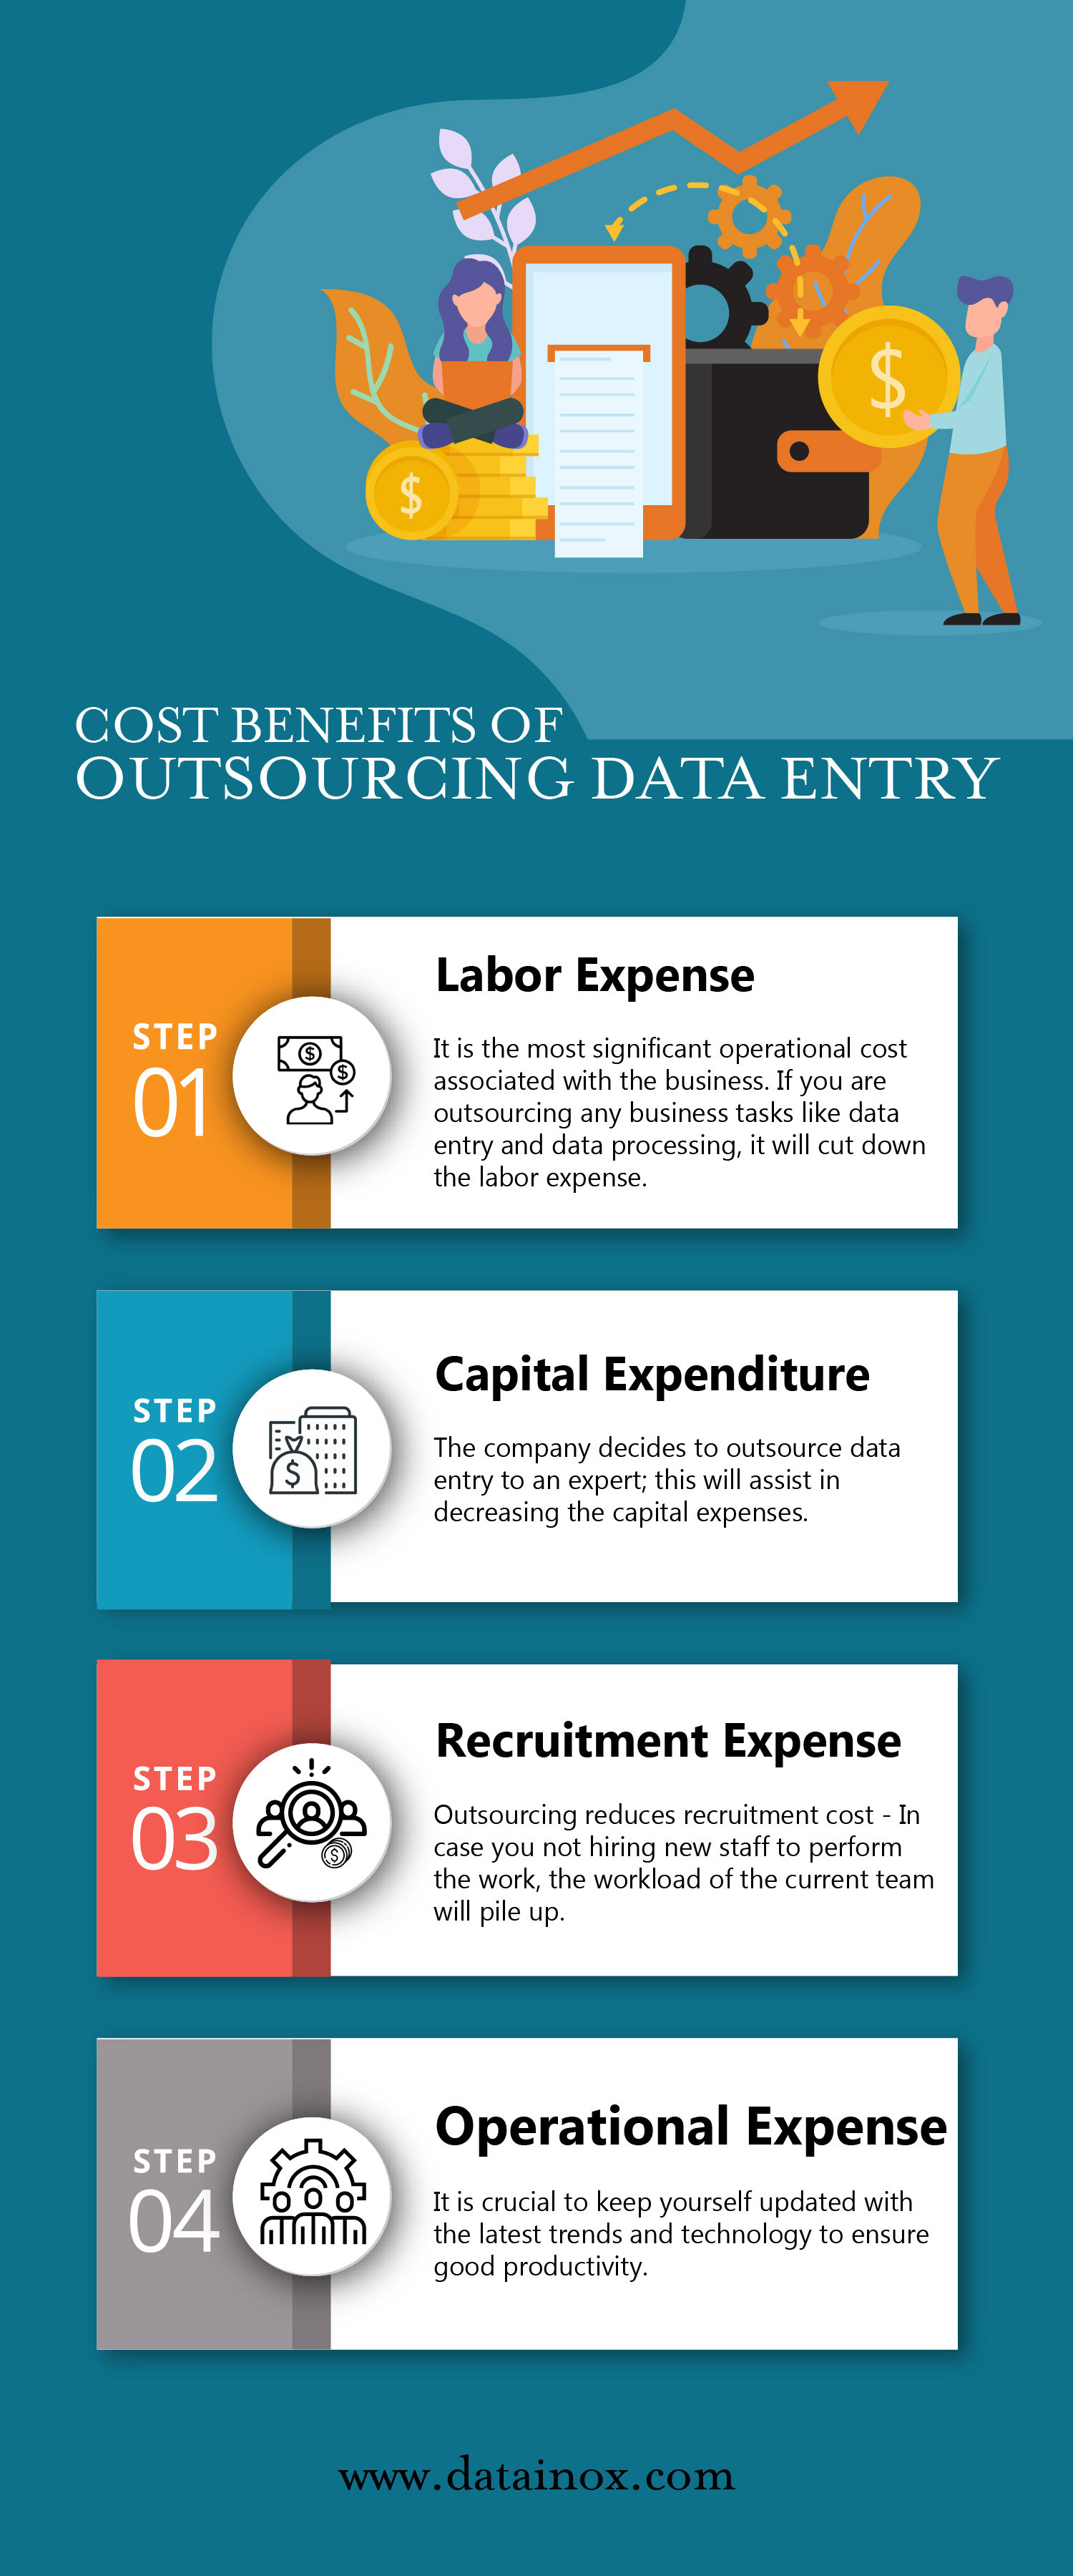 COST BENEFITS OF OUTSOURCING DATA ENTRY SERVICES Infographic